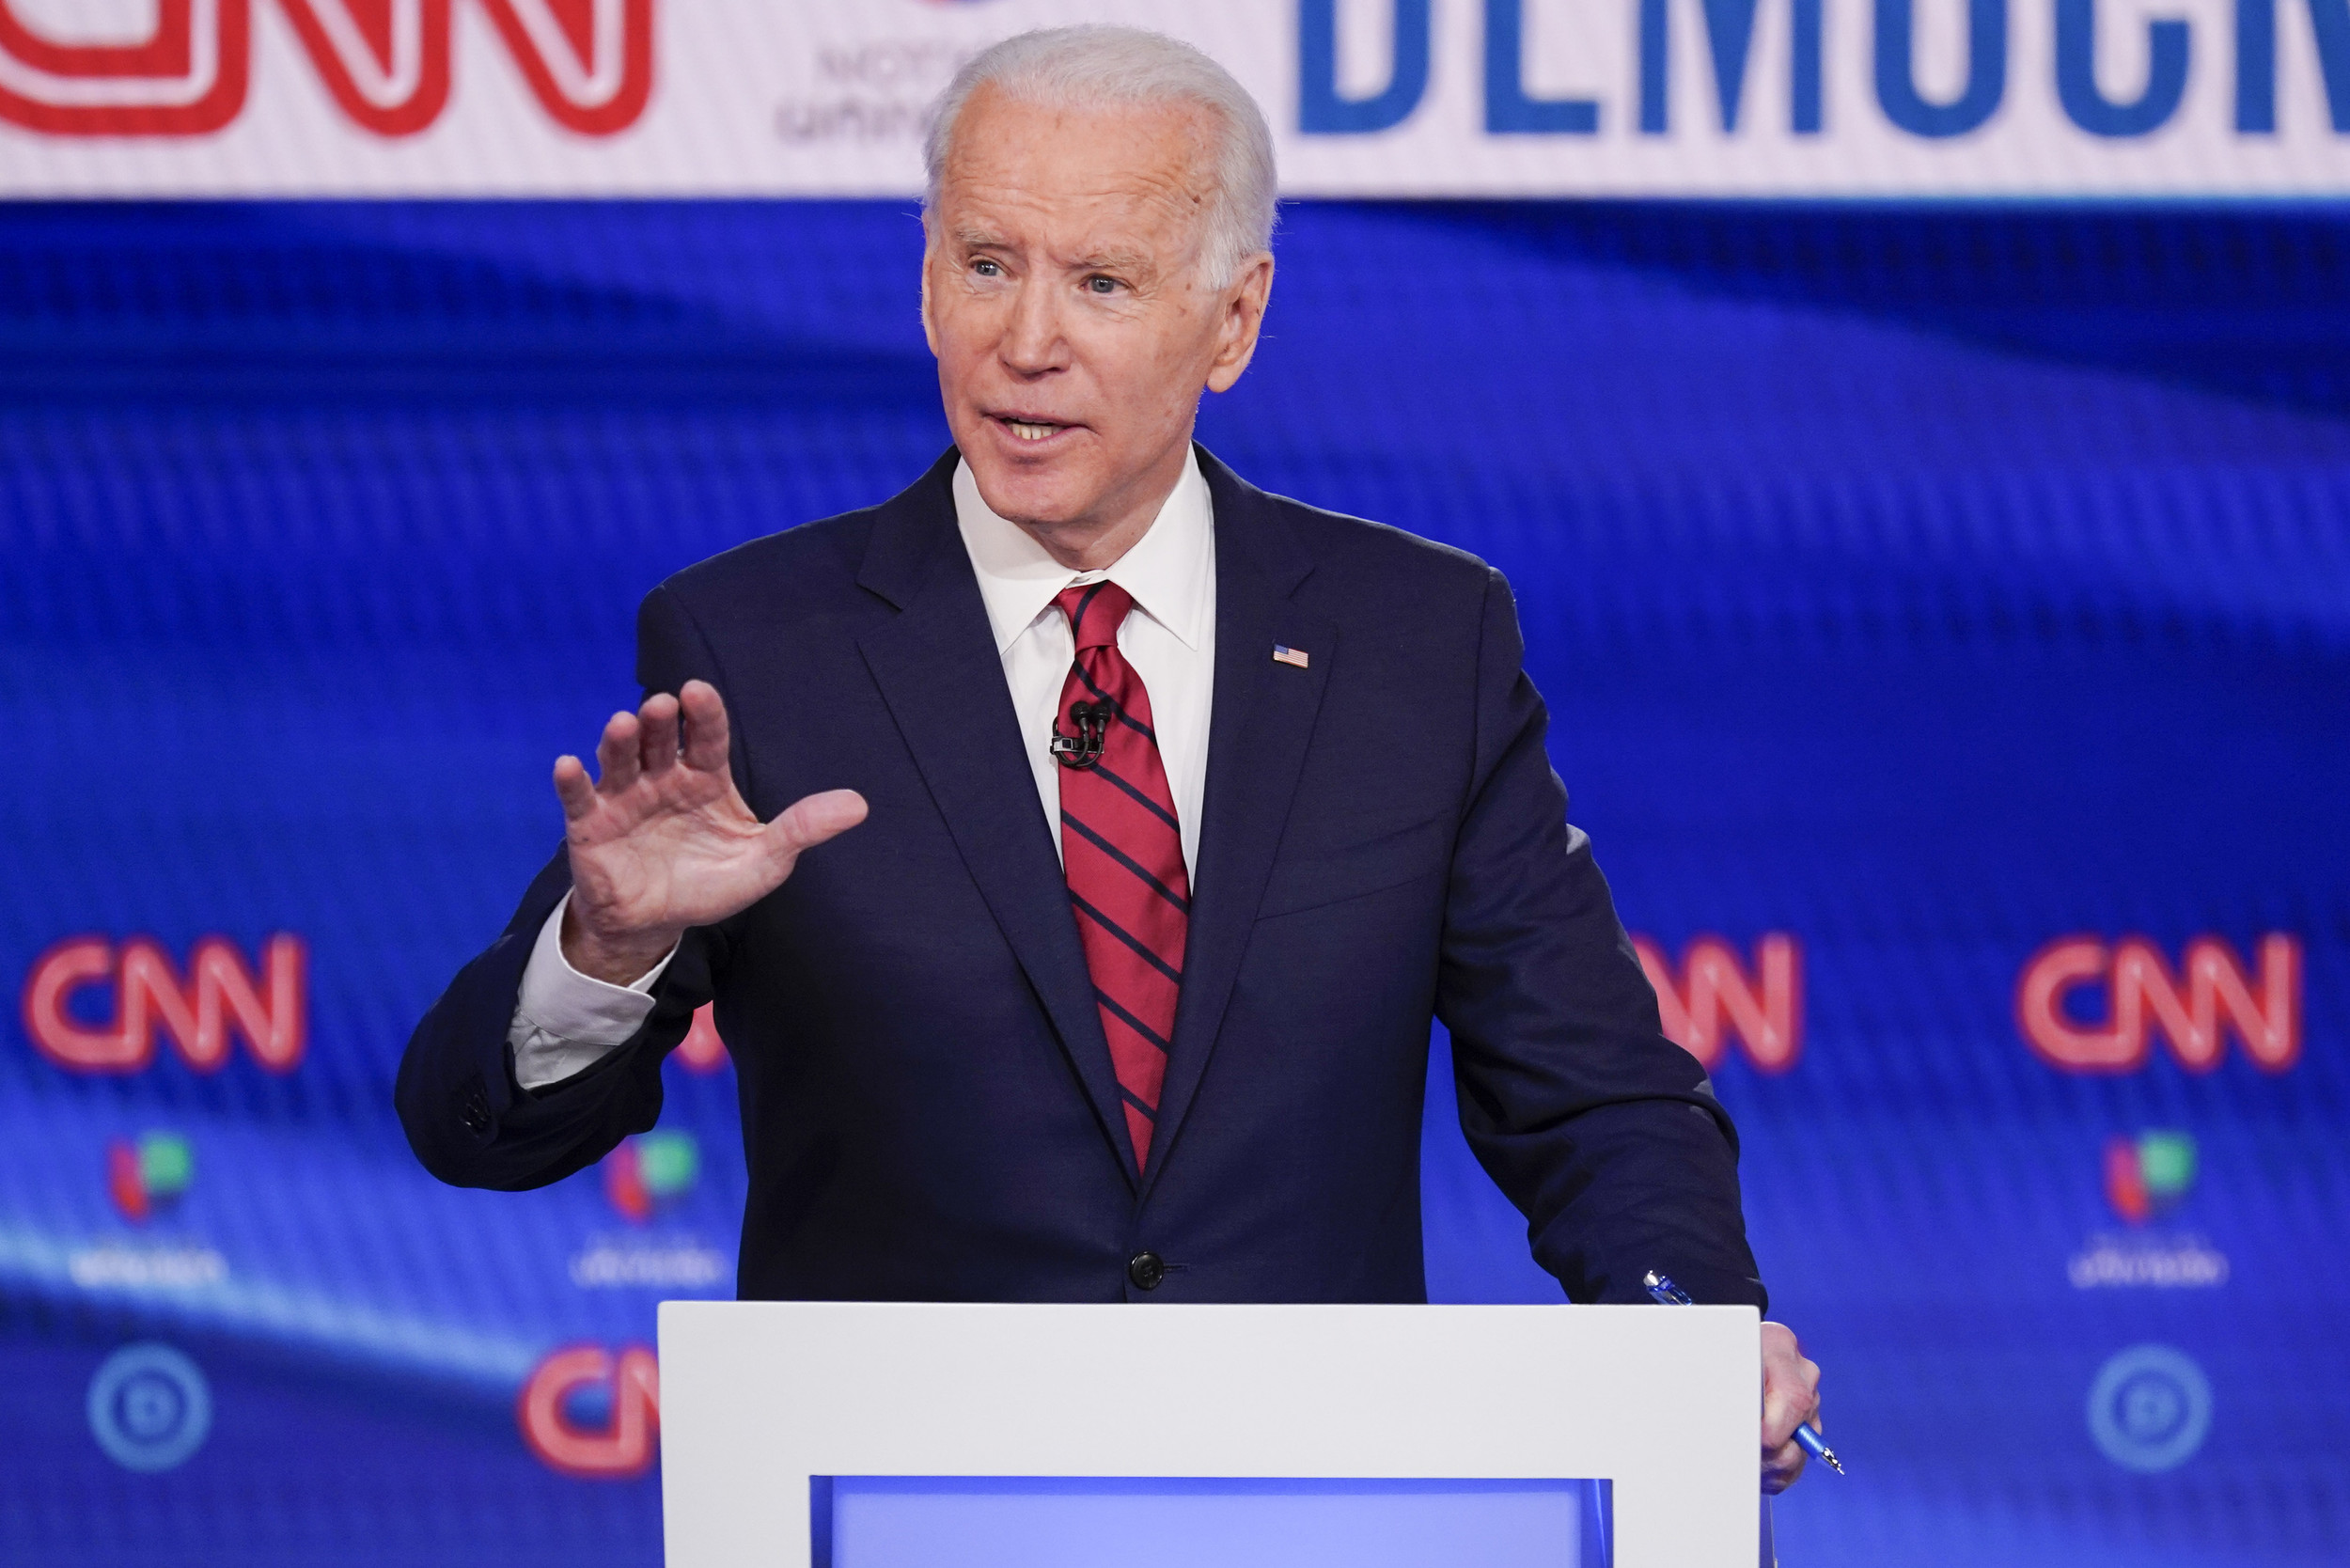 Biden Notches 3 More Victories; Sanders Reassessing Campaign